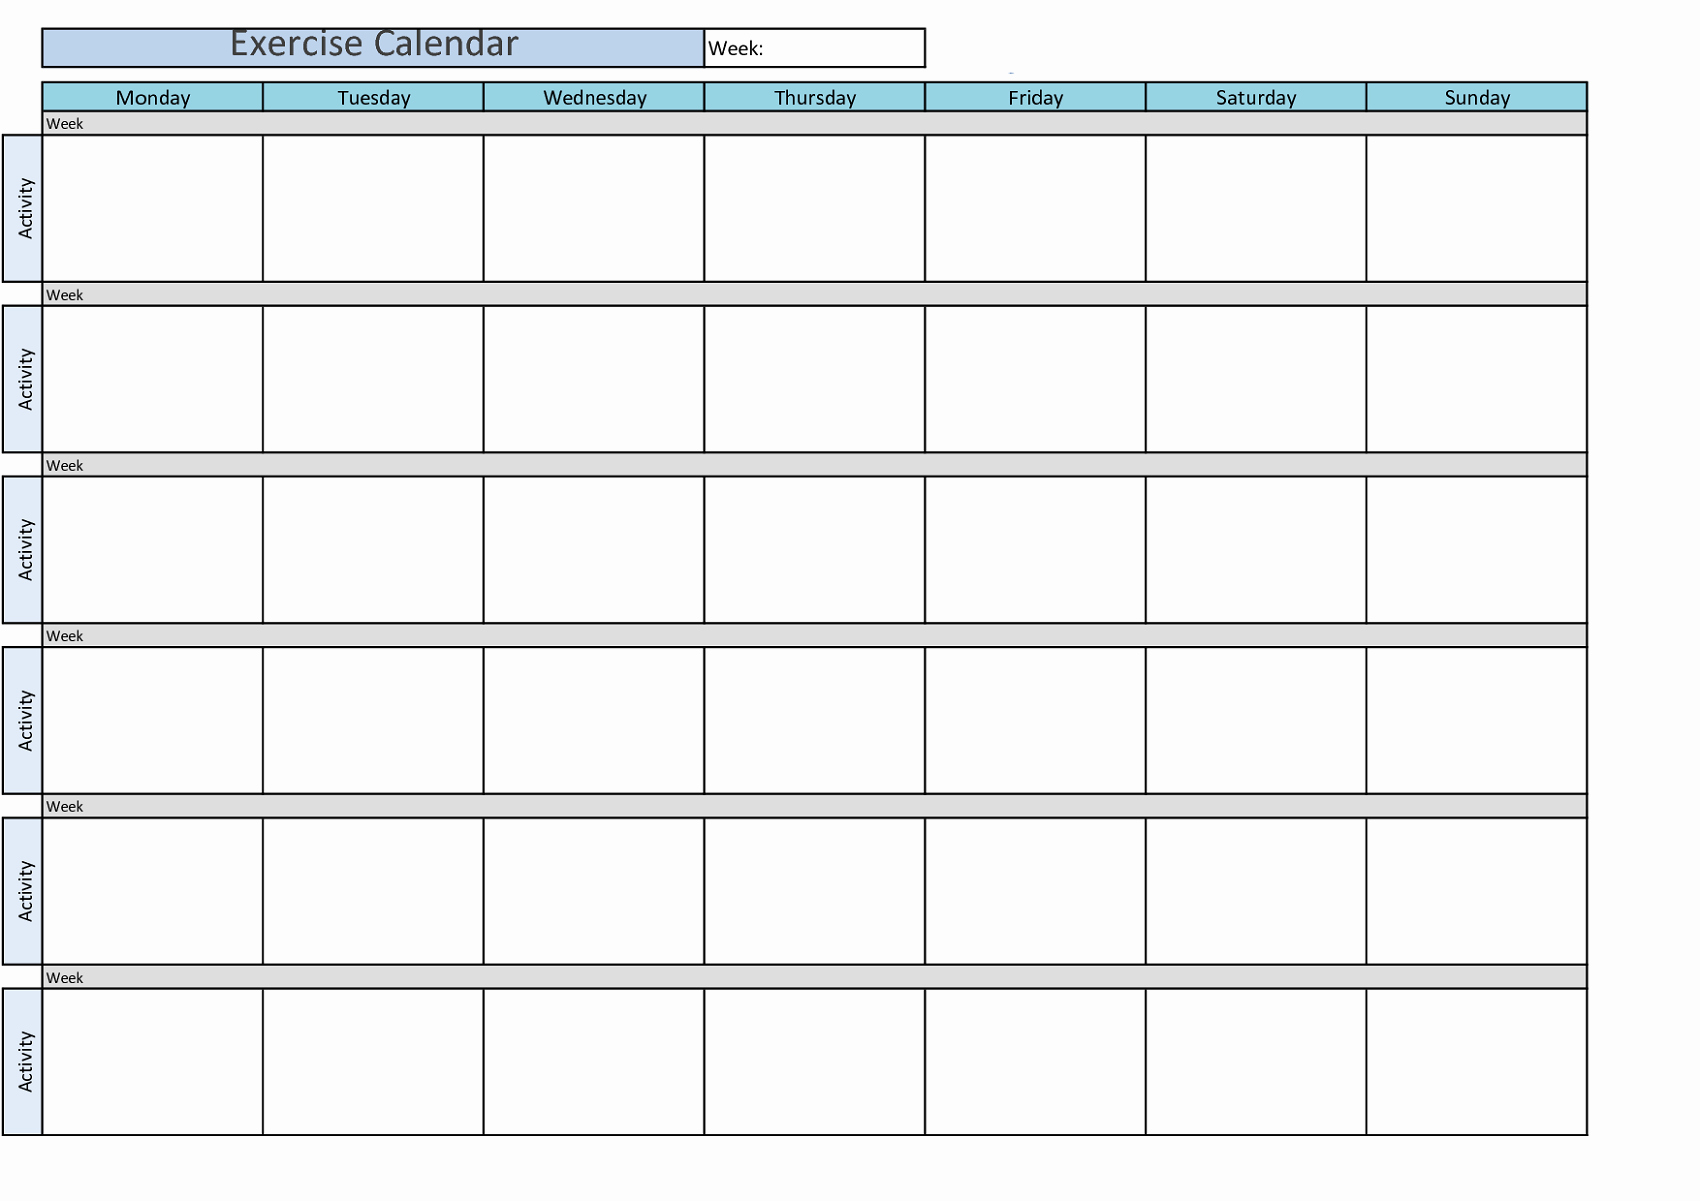 Weekly Workout Schedule Template Luxury Printable Workout Calendar